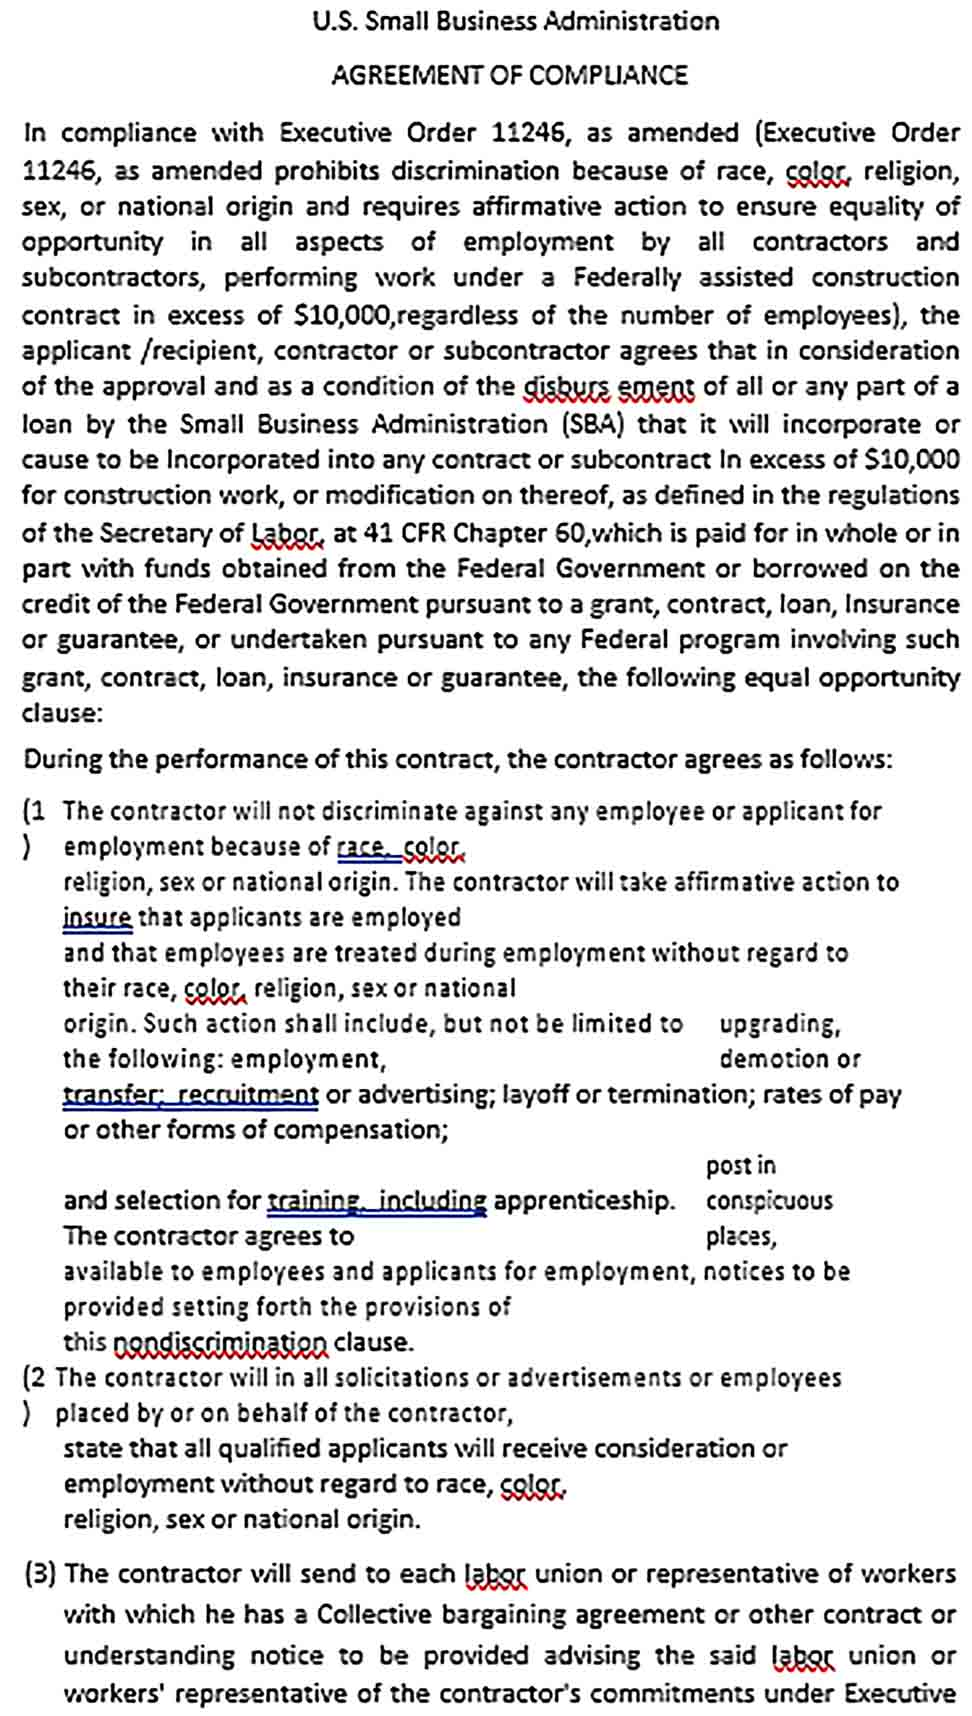 Sample Small Business Administration Agreement 1